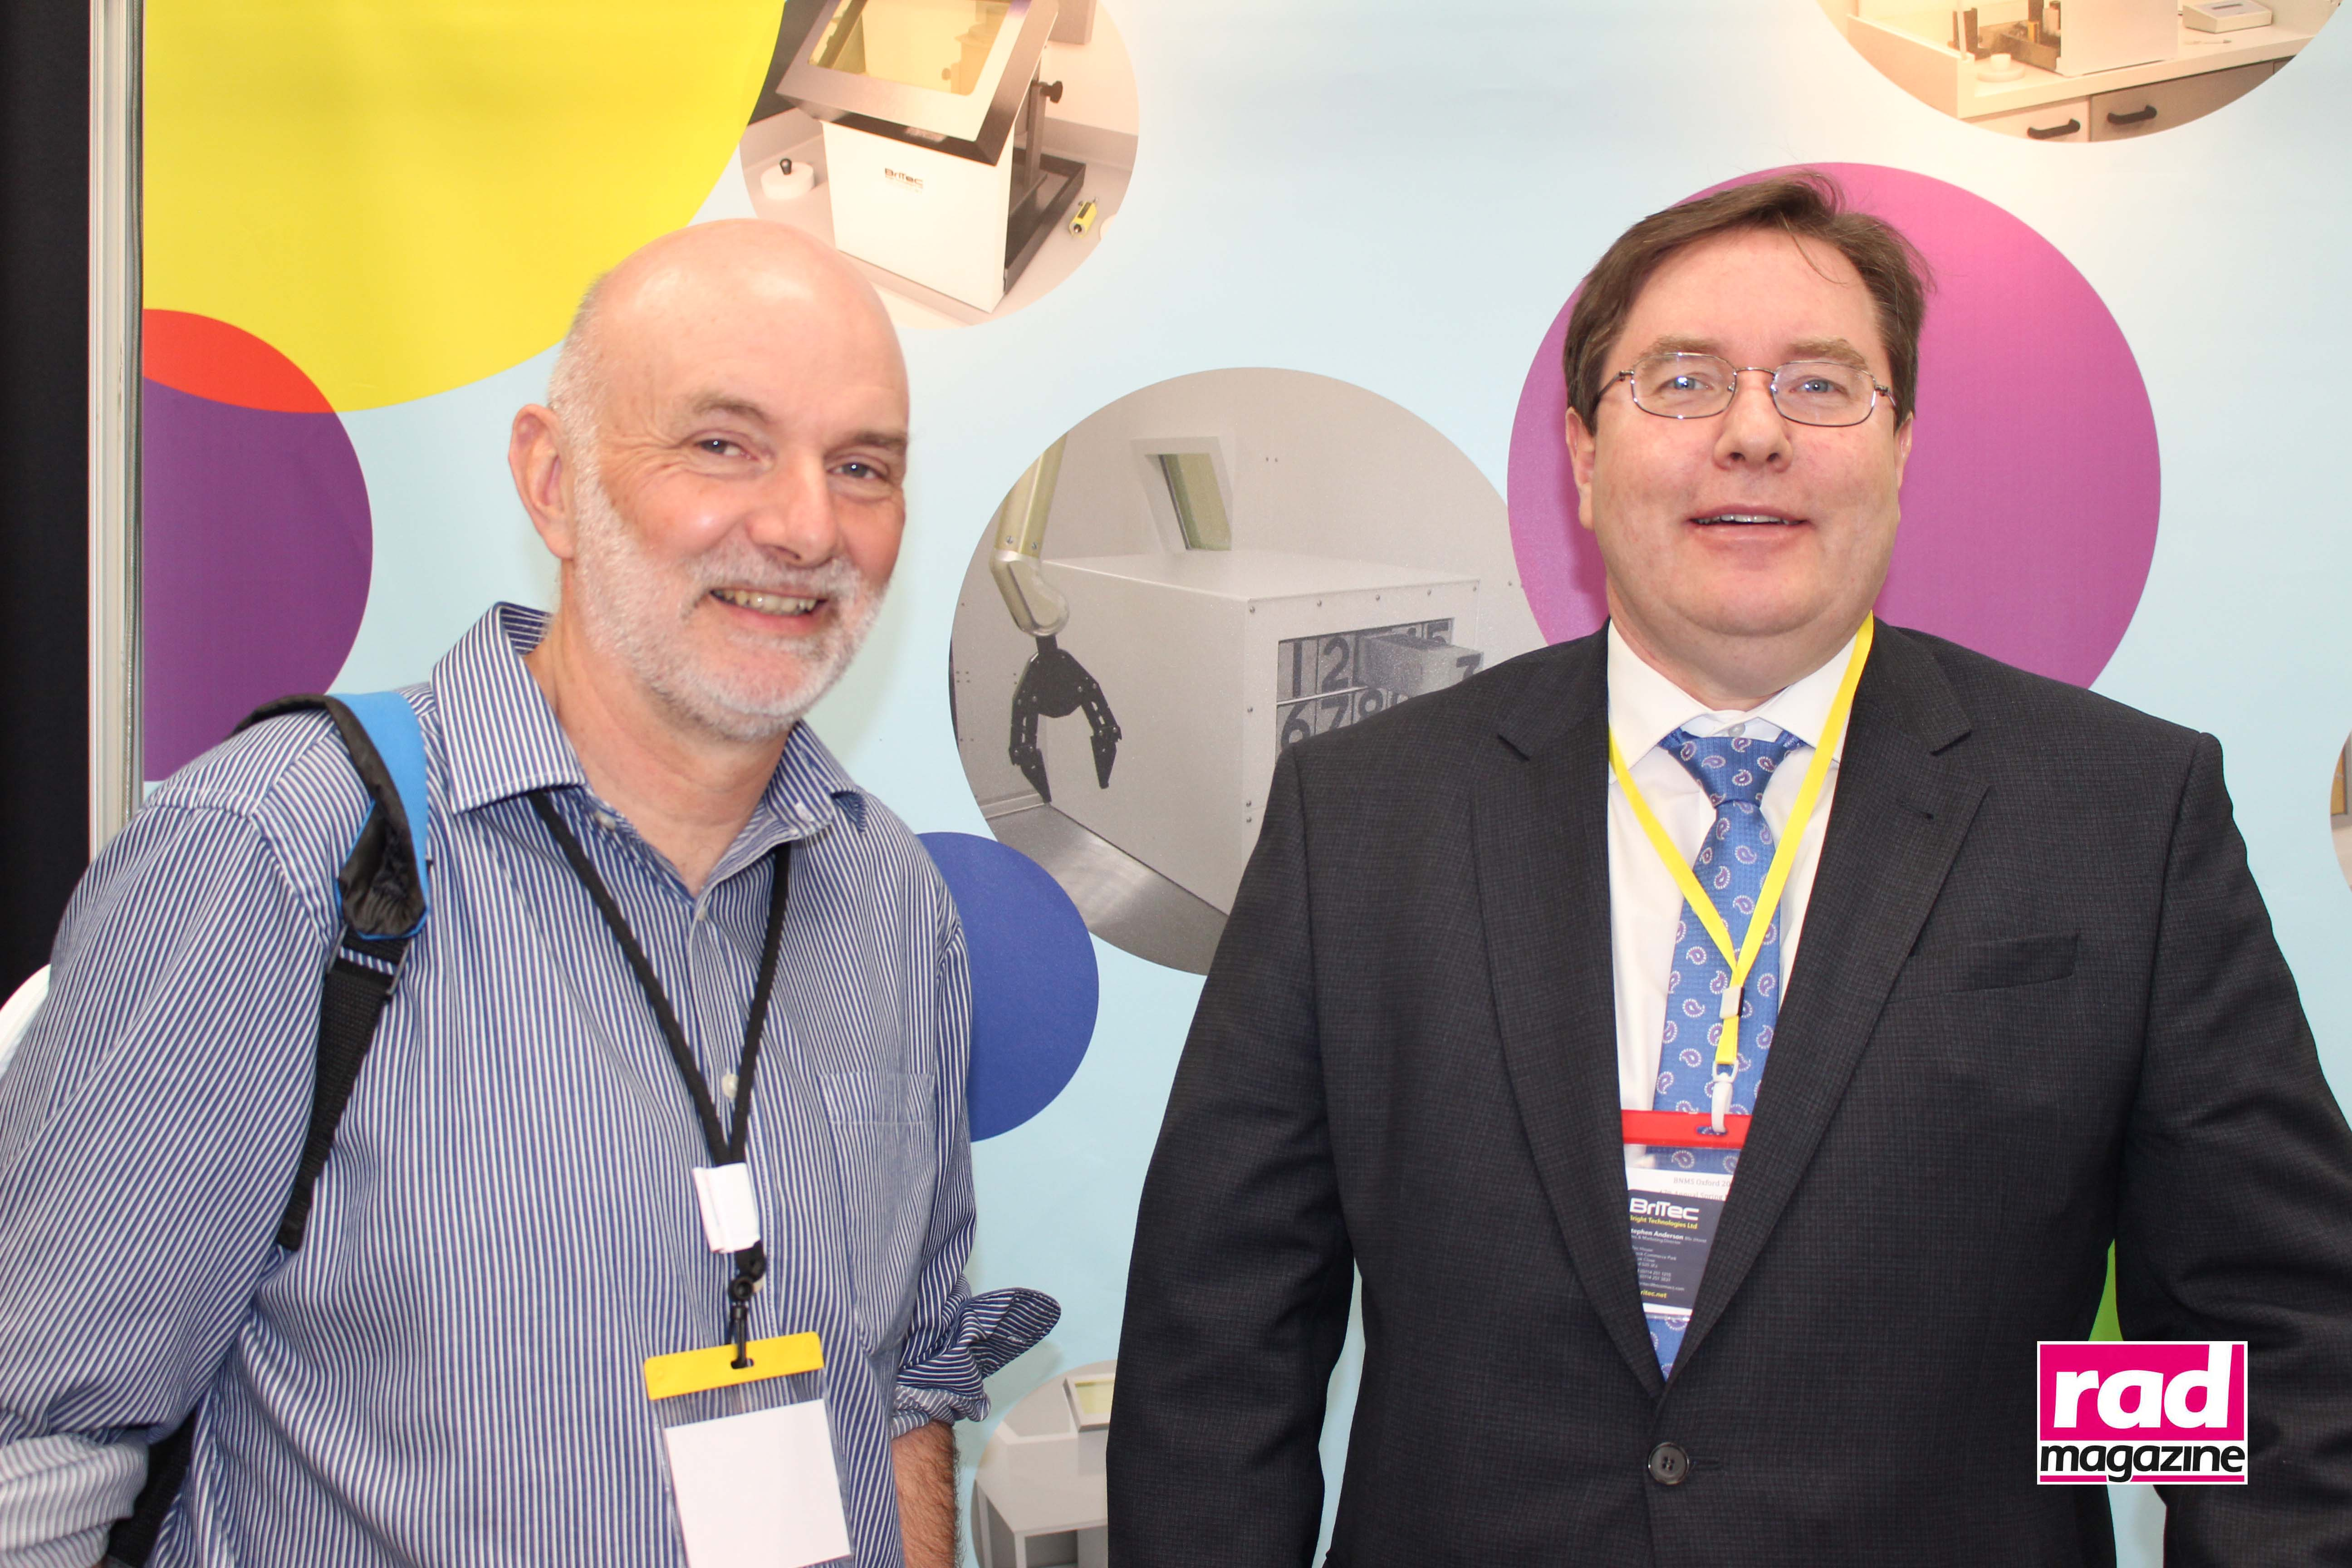 British Nuclear Medicine Society 2019 Bright Technologies